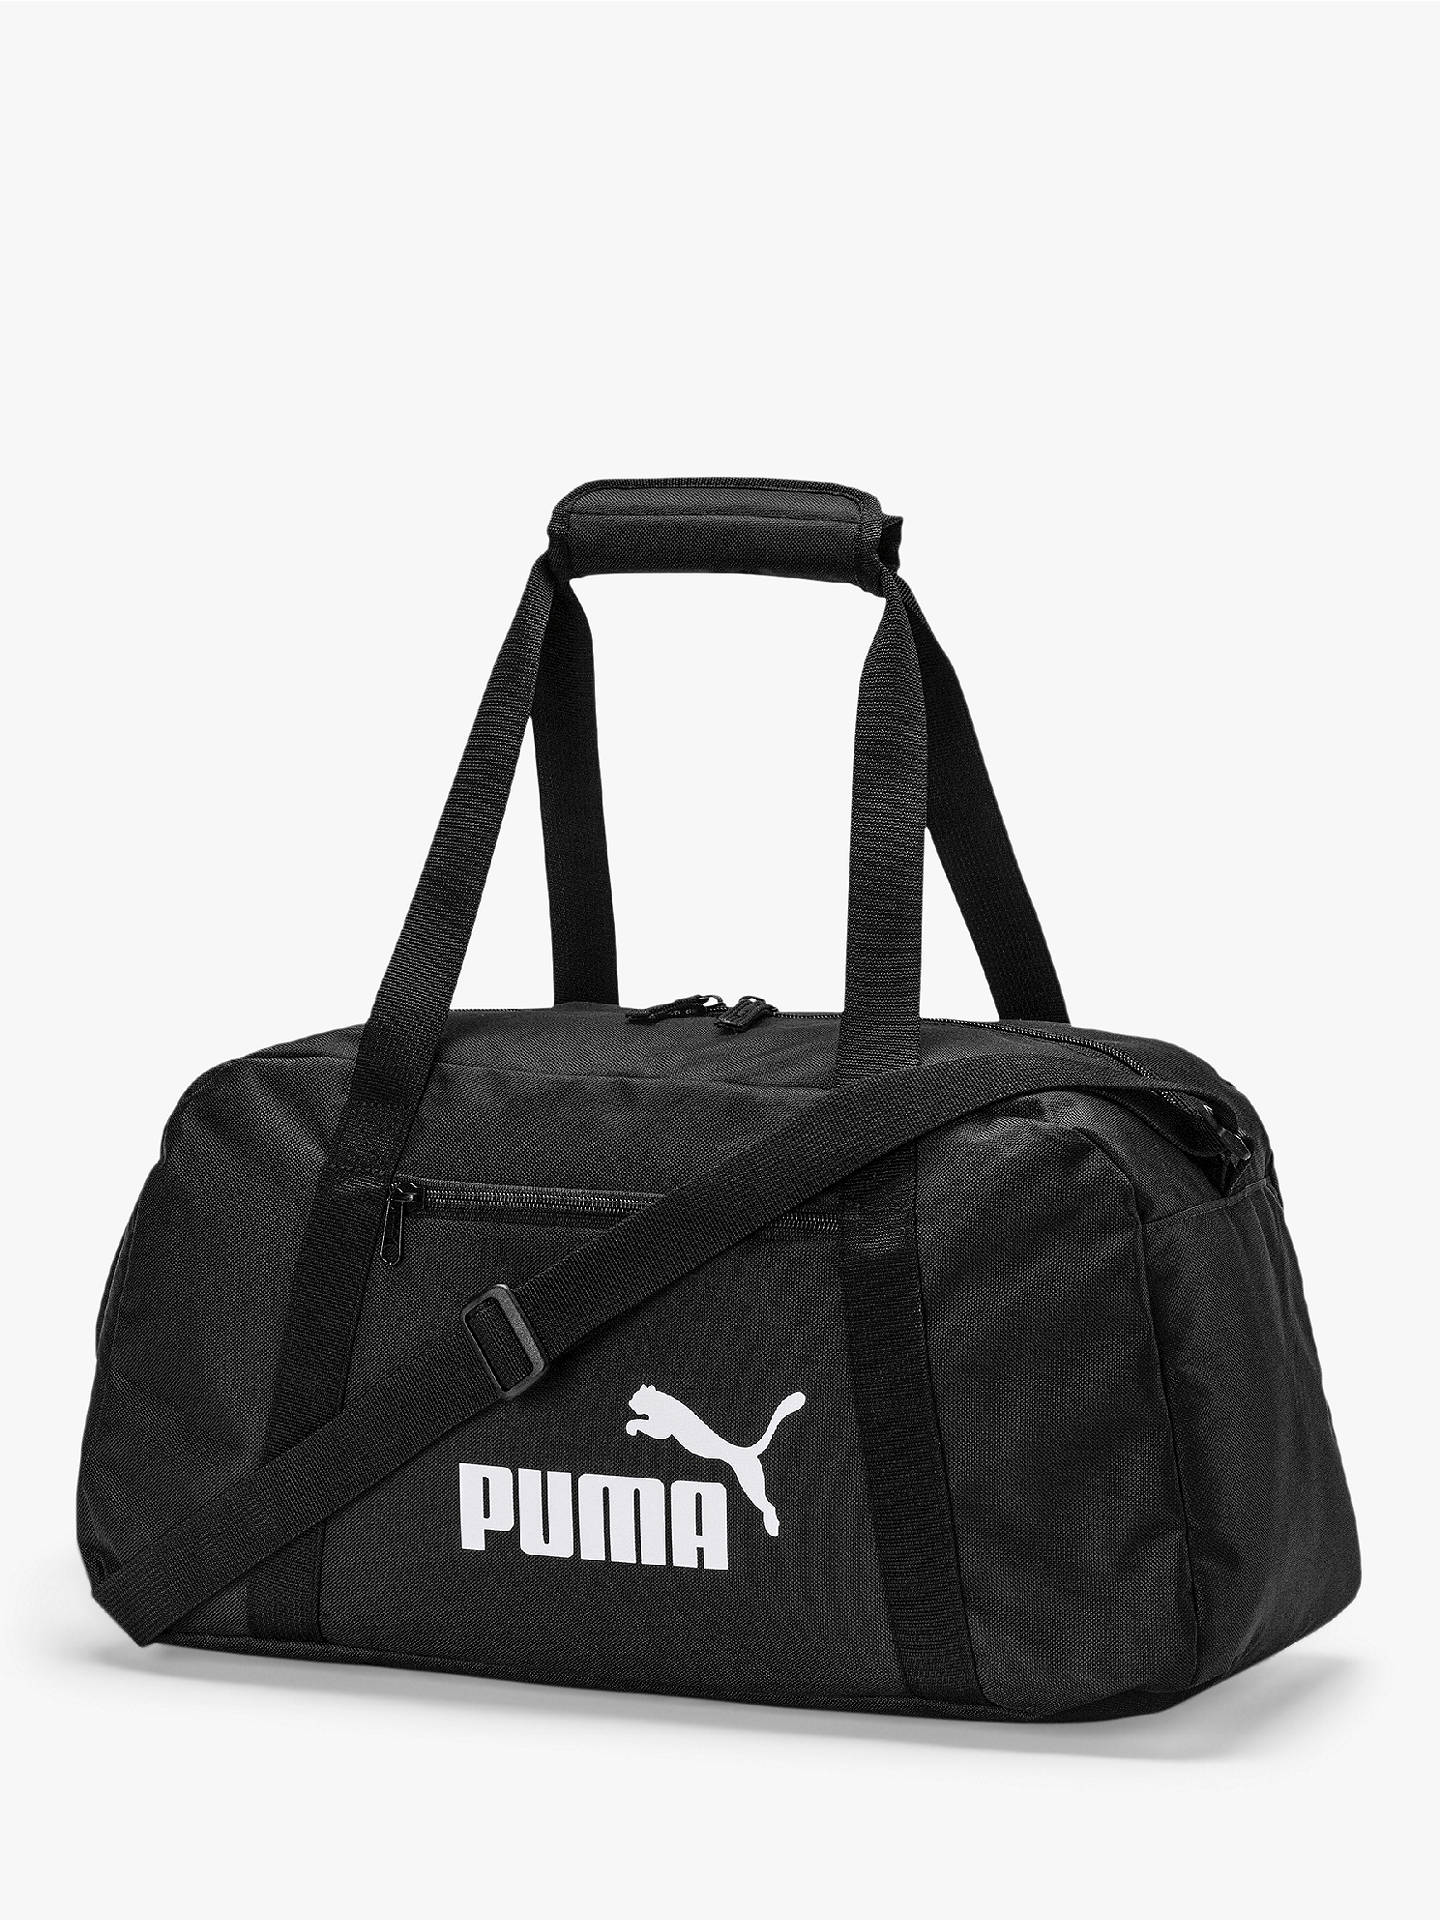 4e3e2670bd4a PUMA Children s Phase Sport Bag at John Lewis   Partners